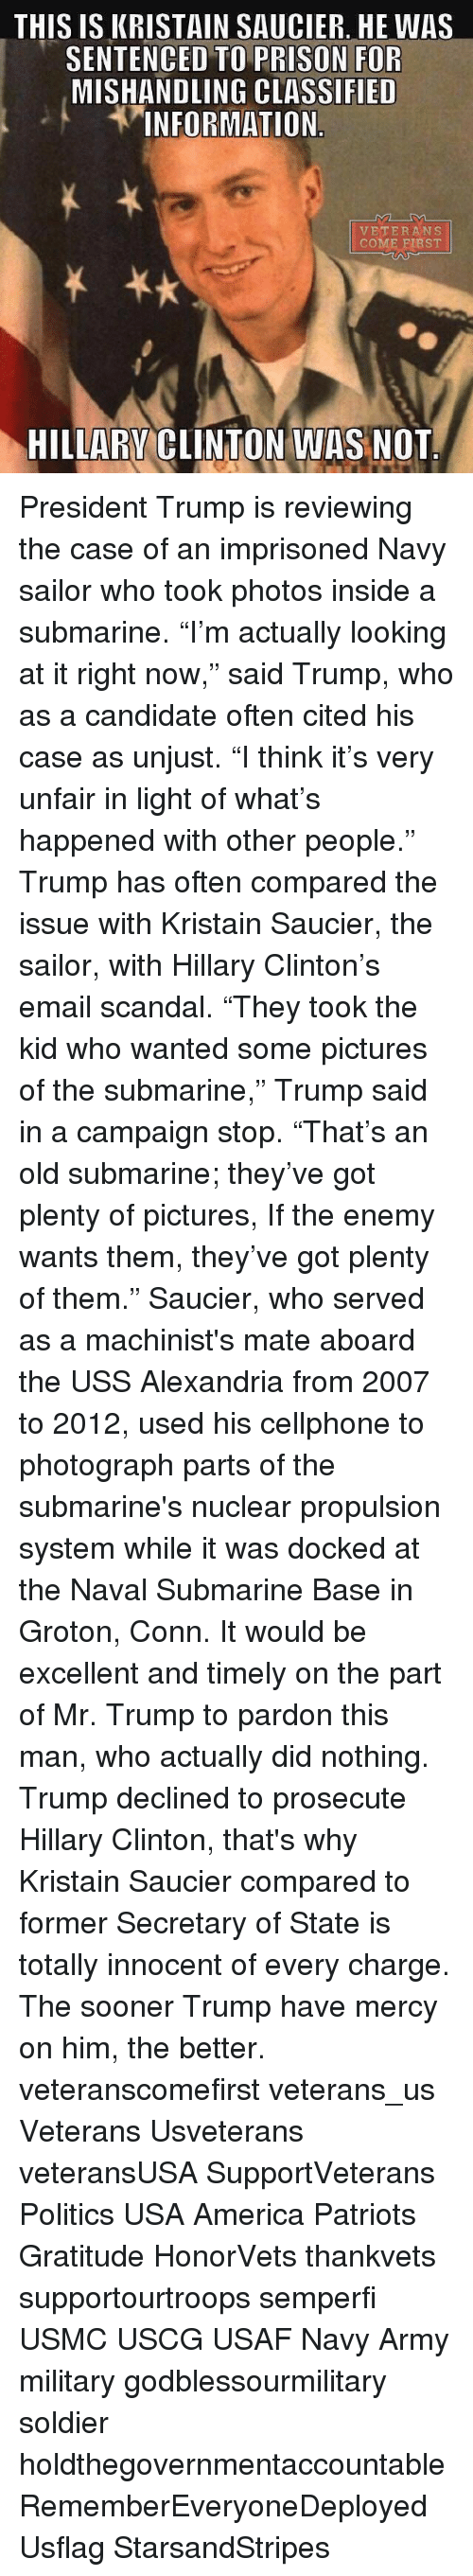 """Hillary Clinton, Memes, and Excel: THIS IS KRISTAIN SAUCIER. HE WAS  SENTENCED TO PRISON FOR  MISHANDLING CLASSIFIED  INFORMATION  VETERANS  COME FIRST  HILLARY CLINTON WAS NOT President Trump is reviewing the case of an imprisoned Navy sailor who took photos inside a submarine. """"I'm actually looking at it right now,"""" said Trump, who as a candidate often cited his case as unjust. """"I think it's very unfair in light of what's happened with other people."""" Trump has often compared the issue with Kristain Saucier, the sailor, with Hillary Clinton's email scandal. """"They took the kid who wanted some pictures of the submarine,"""" Trump said in a campaign stop. """"That's an old submarine; they've got plenty of pictures, If the enemy wants them, they've got plenty of them."""" Saucier, who served as a machinist's mate aboard the USS Alexandria from 2007 to 2012, used his cellphone to photograph parts of the submarine's nuclear propulsion system while it was docked at the Naval Submarine Base in Groton, Conn. It would be excellent and timely on the part of Mr. Trump to pardon this man, who actually did nothing. Trump declined to prosecute Hillary Clinton, that's why Kristain Saucier compared to former Secretary of State is totally innocent of every charge. The sooner Trump have mercy on him, the better. veteranscomefirst veterans_us Veterans Usveterans veteransUSA SupportVeterans Politics USA America Patriots Gratitude HonorVets thankvets supportourtroops semperfi USMC USCG USAF Navy Army military godblessourmilitary soldier holdthegovernmentaccountable RememberEveryoneDeployed Usflag StarsandStripes"""